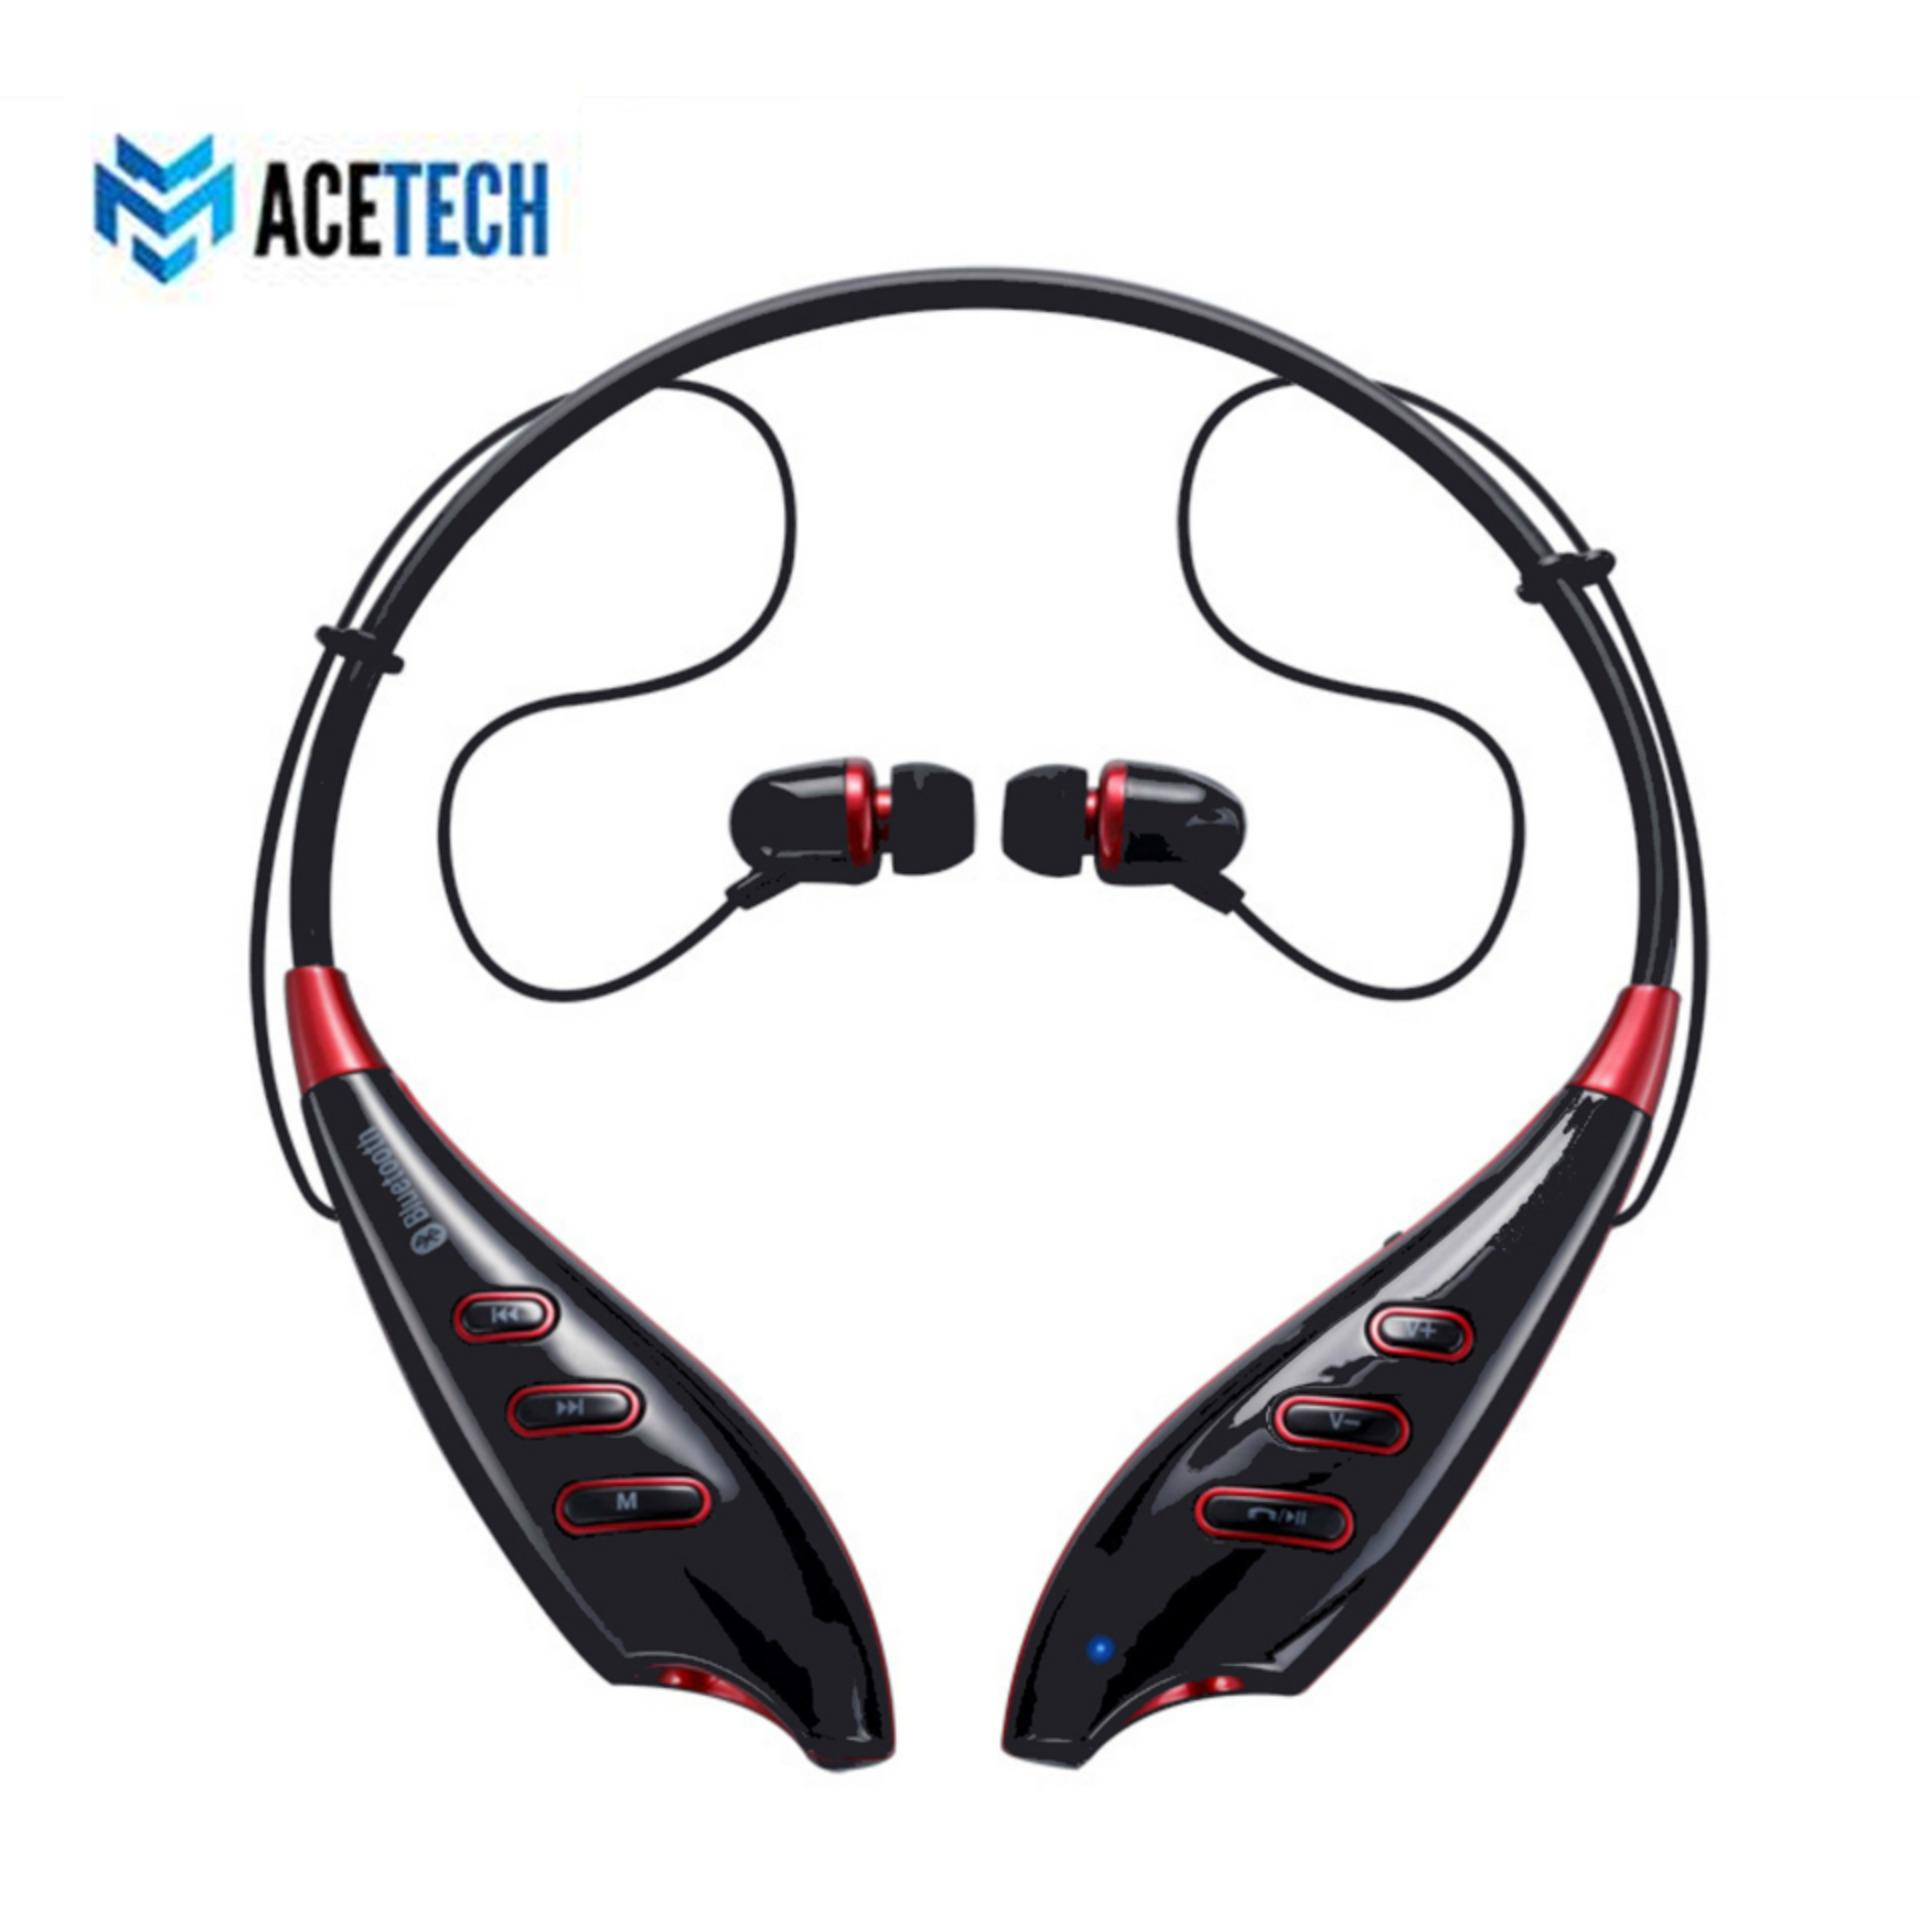 Acetech Headset Bluetooth 4 0 Stereo Headphone Support FM TF Dengan Mikrofon Untuk iPhone Samsung S740T